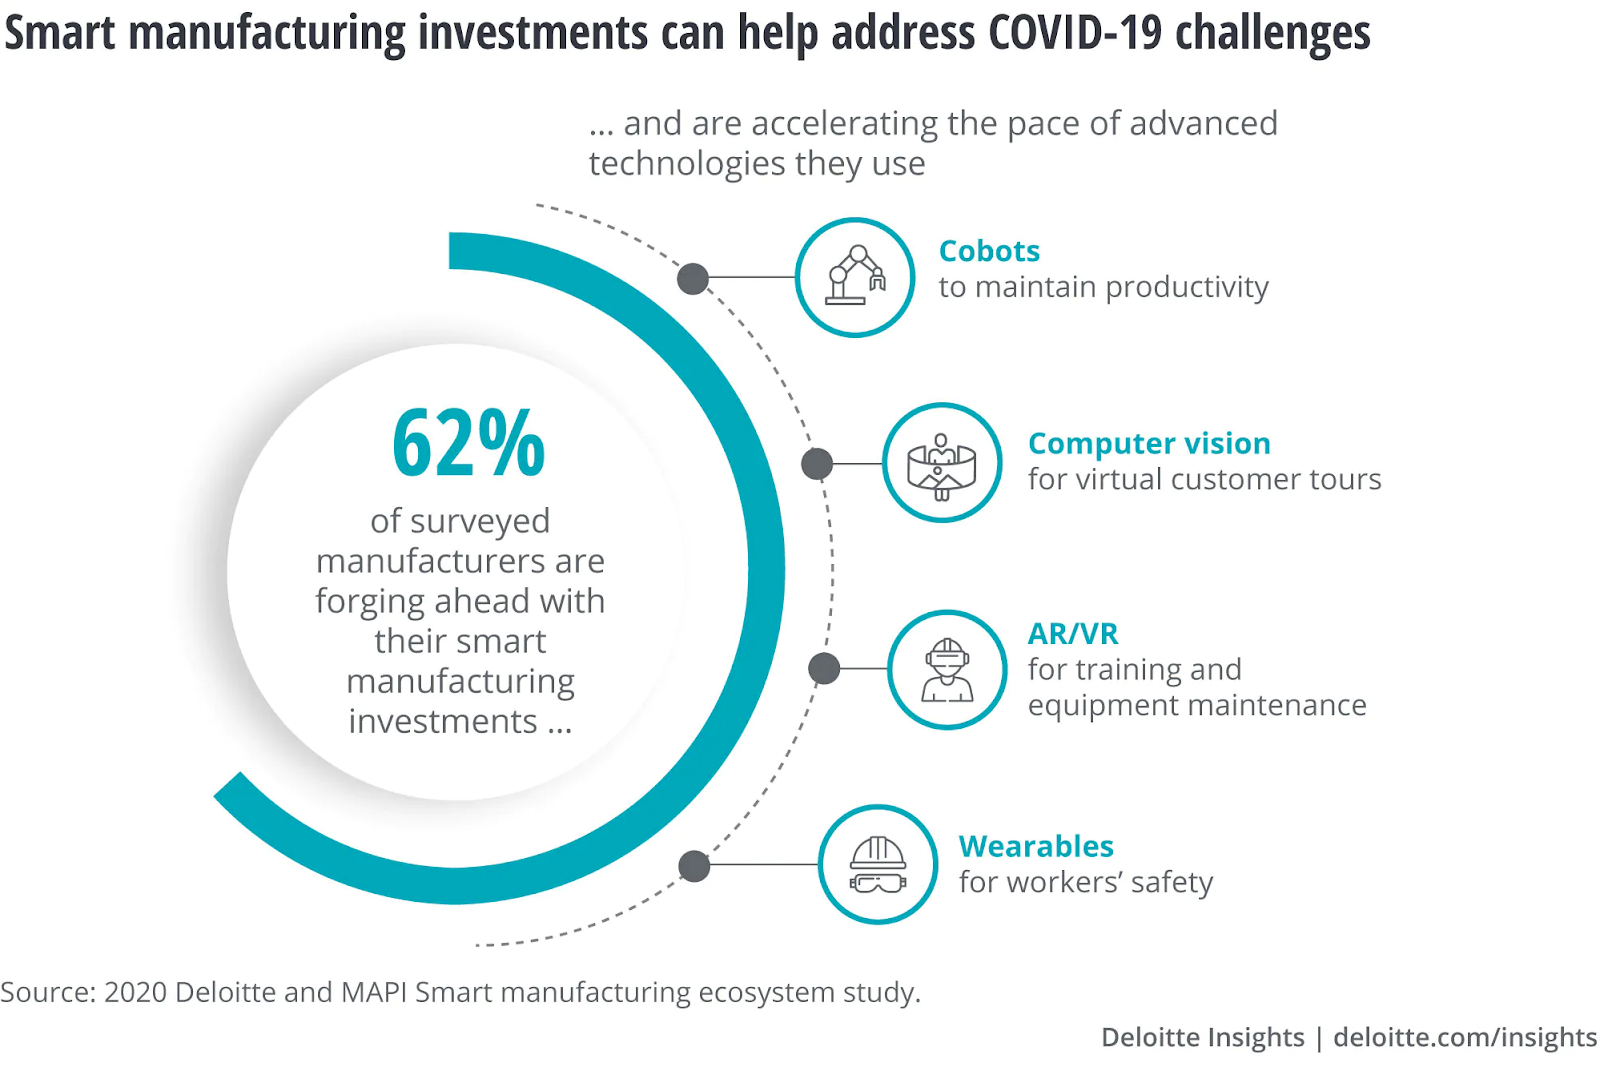 Smart manufacturing investments to introduce digital transformation